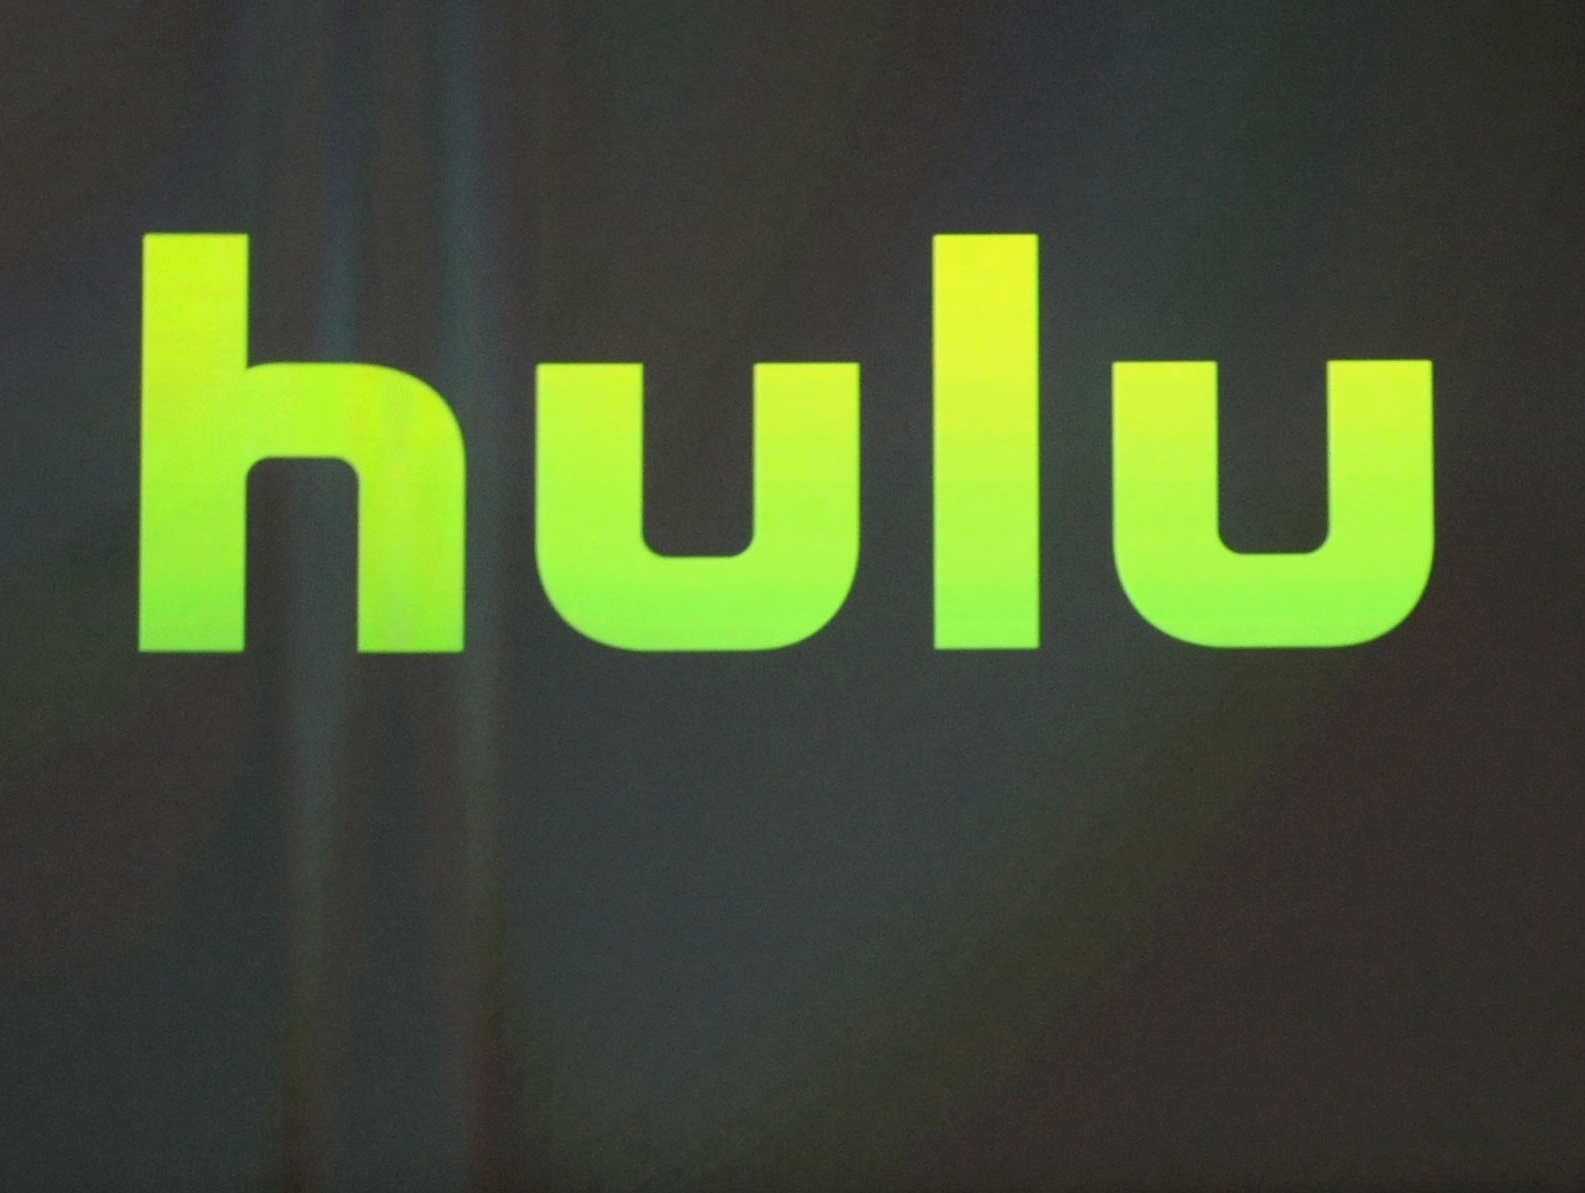 Hulu Hulu Adds Cbs Content To Live Streaming Lineup Smartbrief